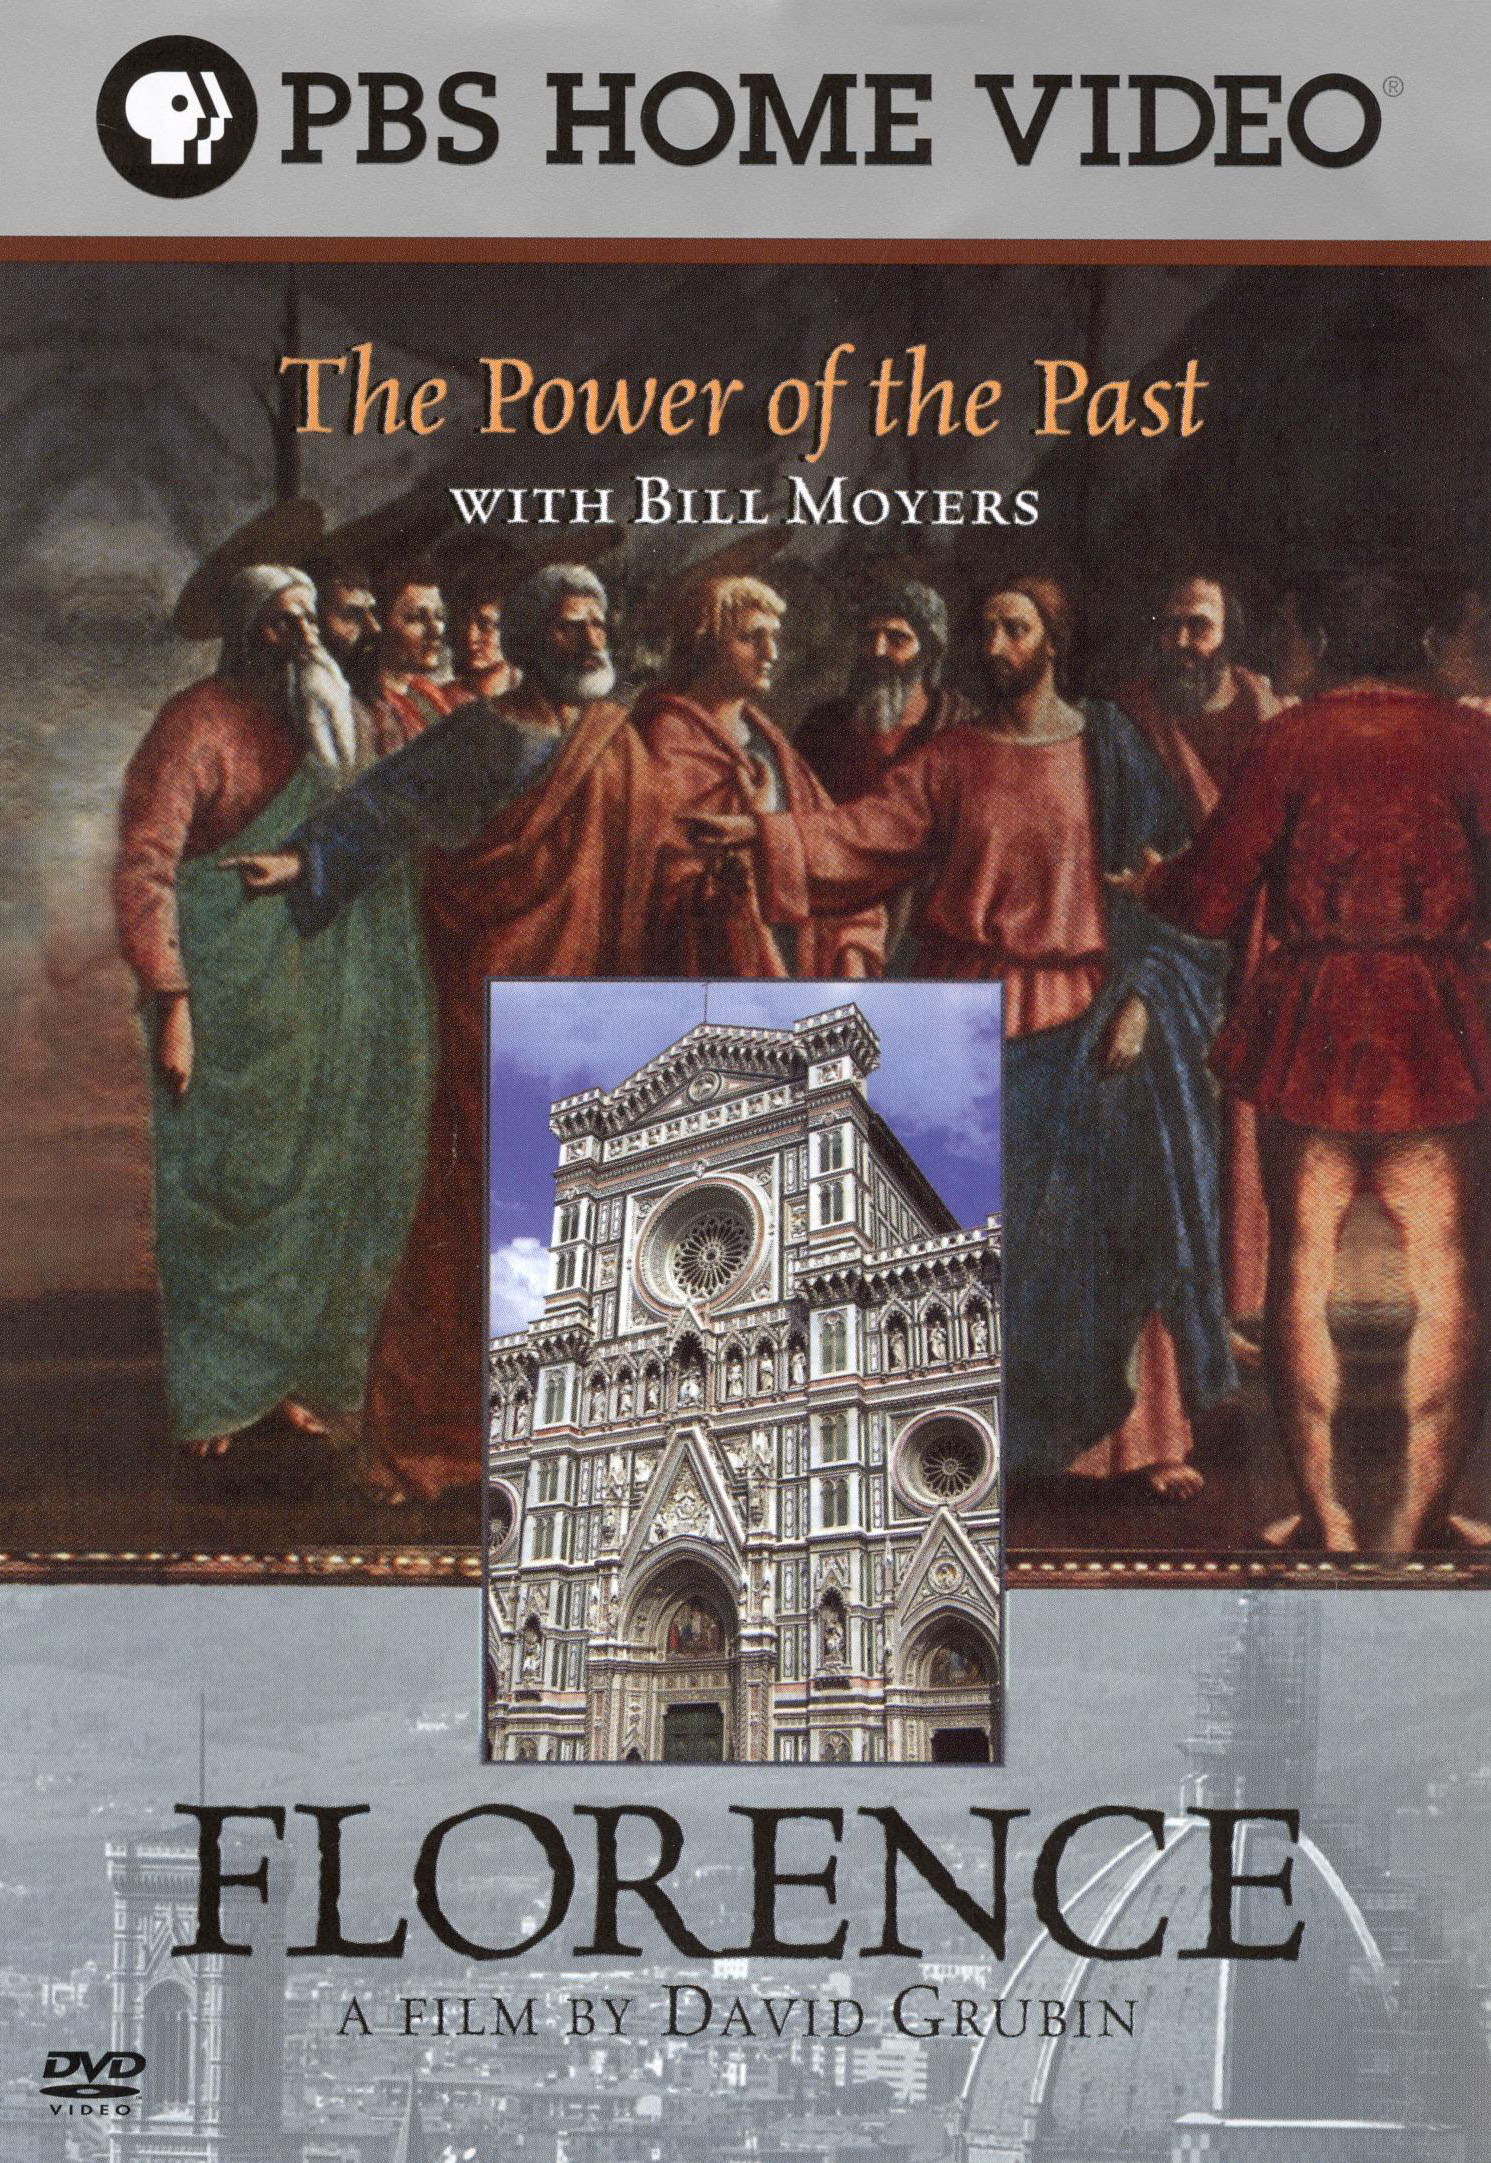 Bill Moyers: The Power of the Past - Florence